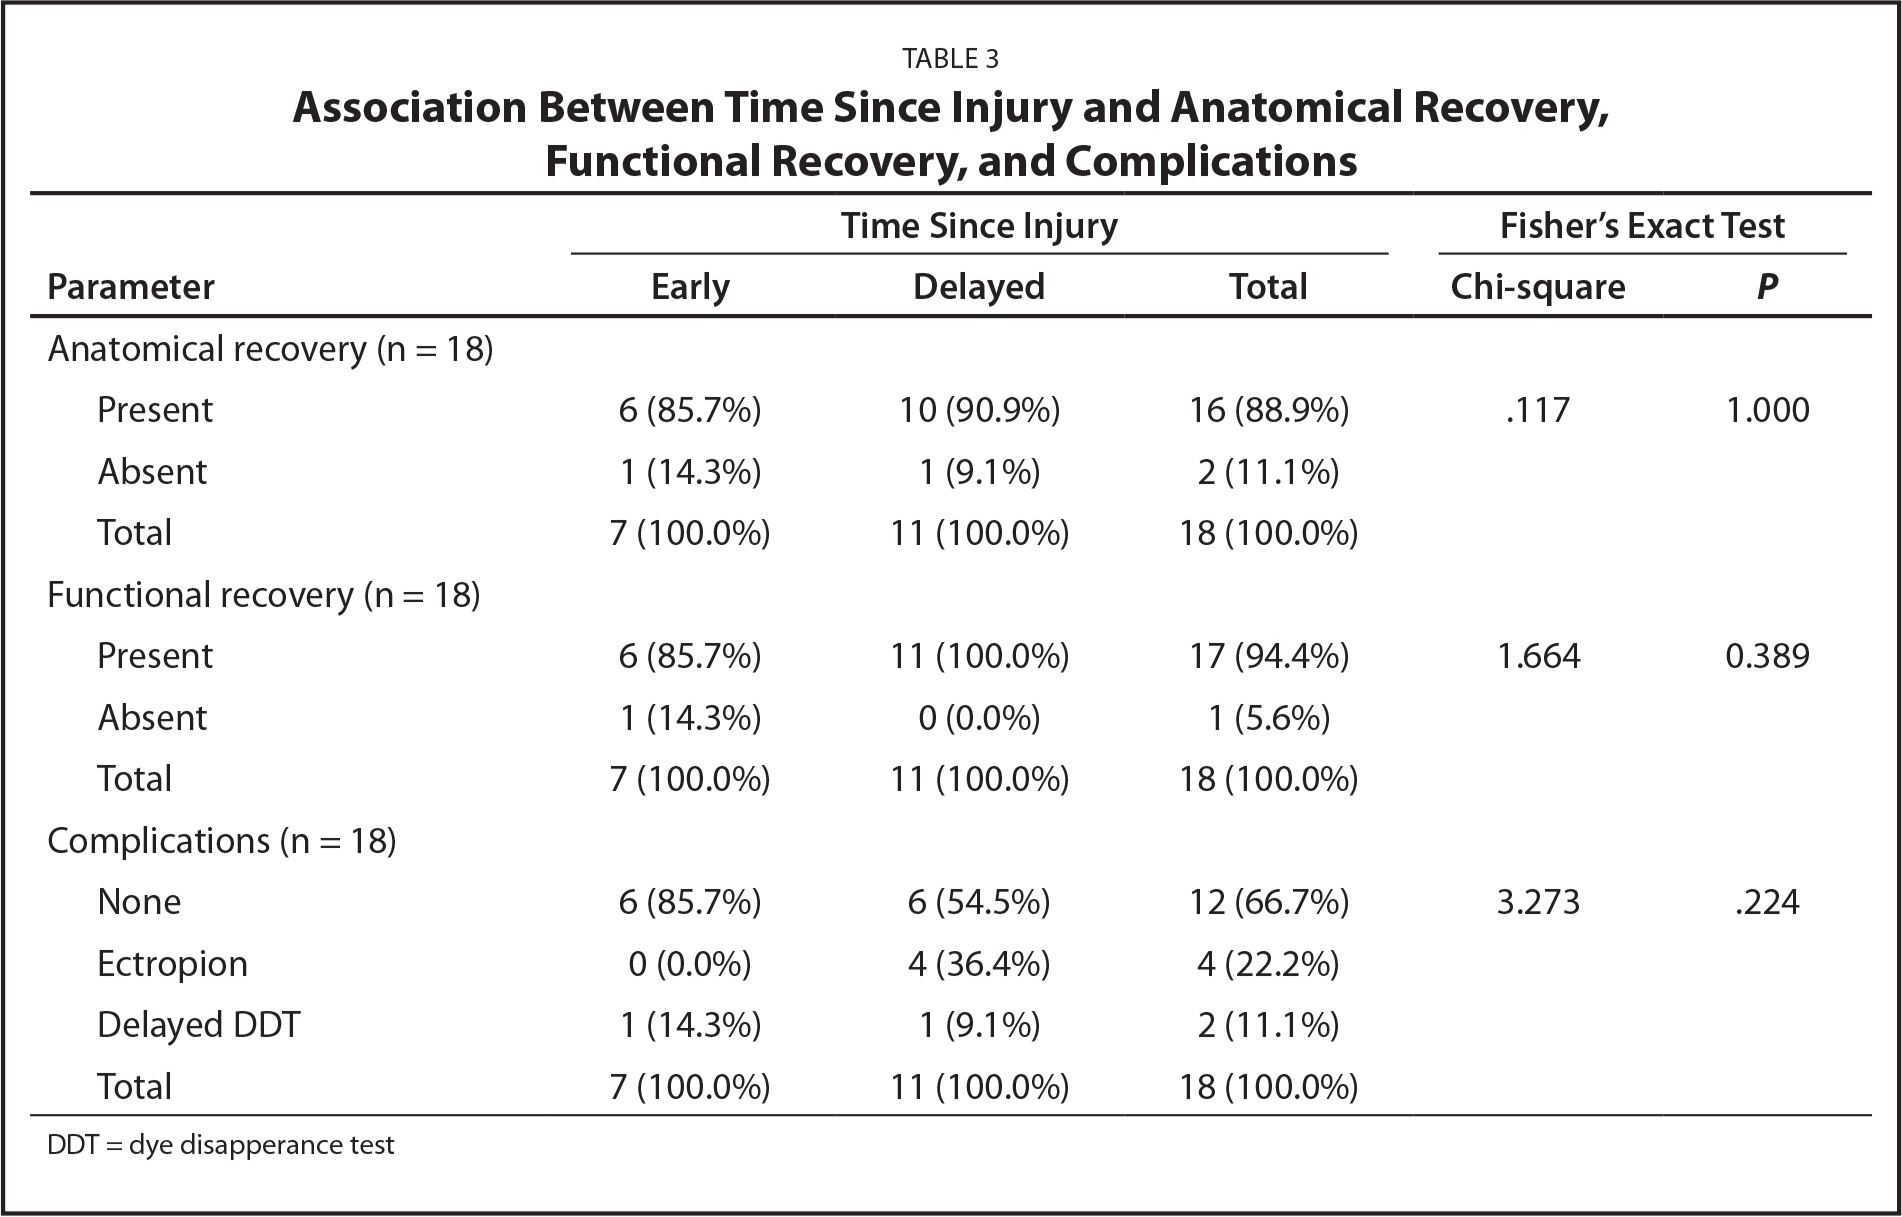 Association Between Time Since Injury and Anatomical Recovery, Functional Recovery, and Complications